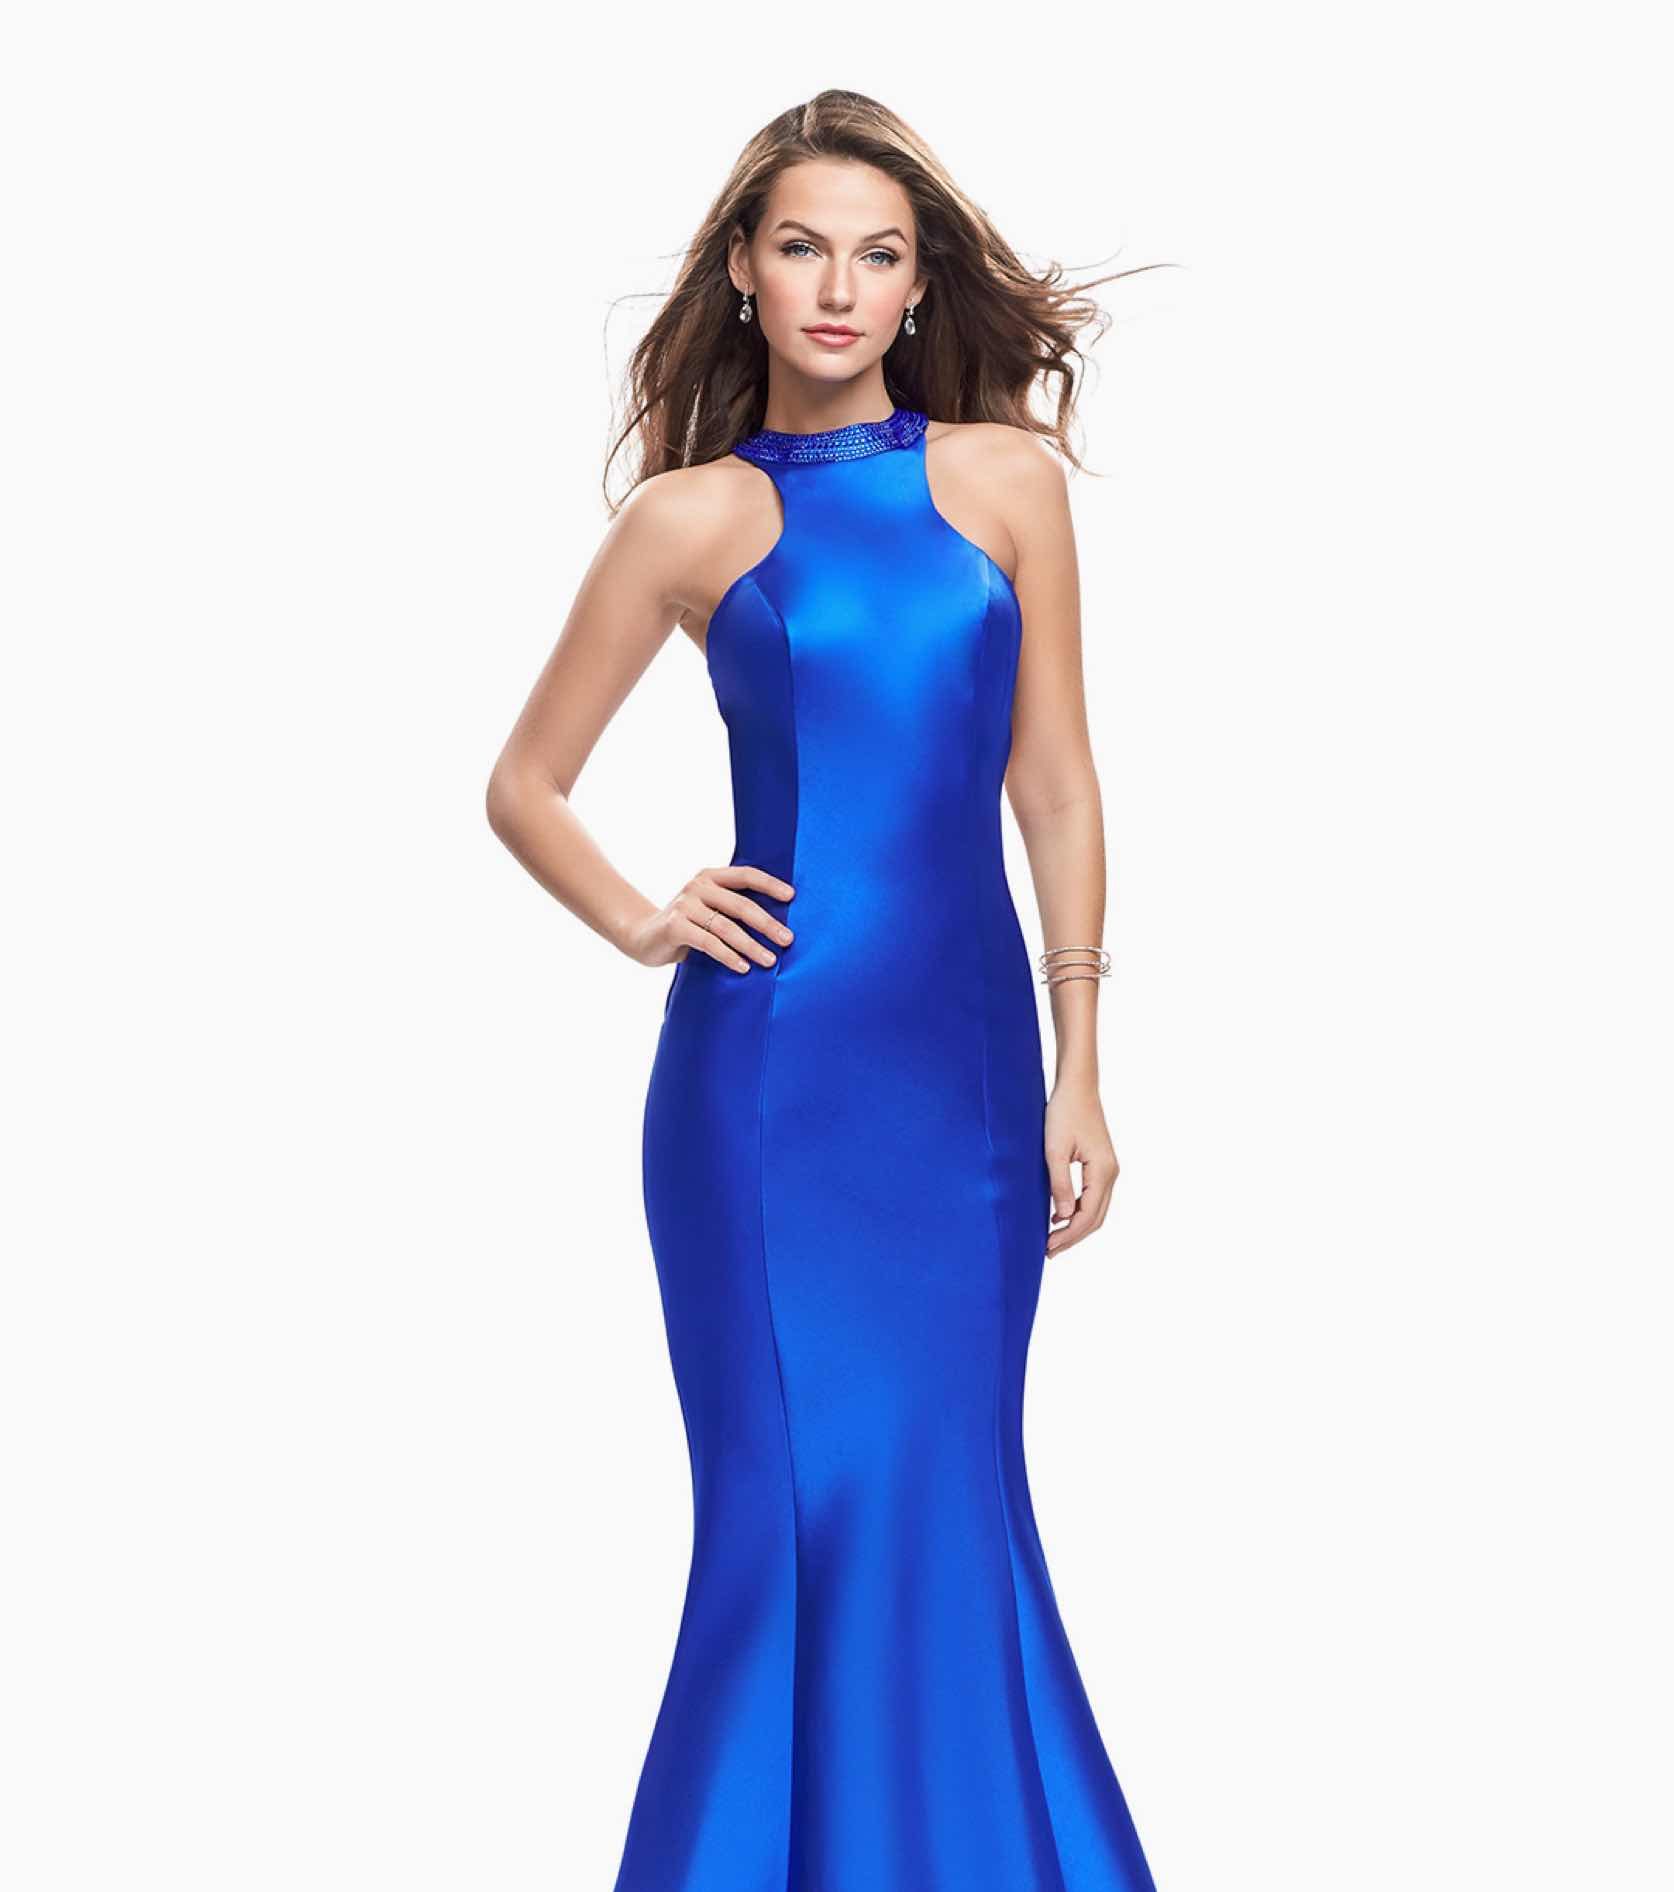 Model in blue halter top Gigi gown